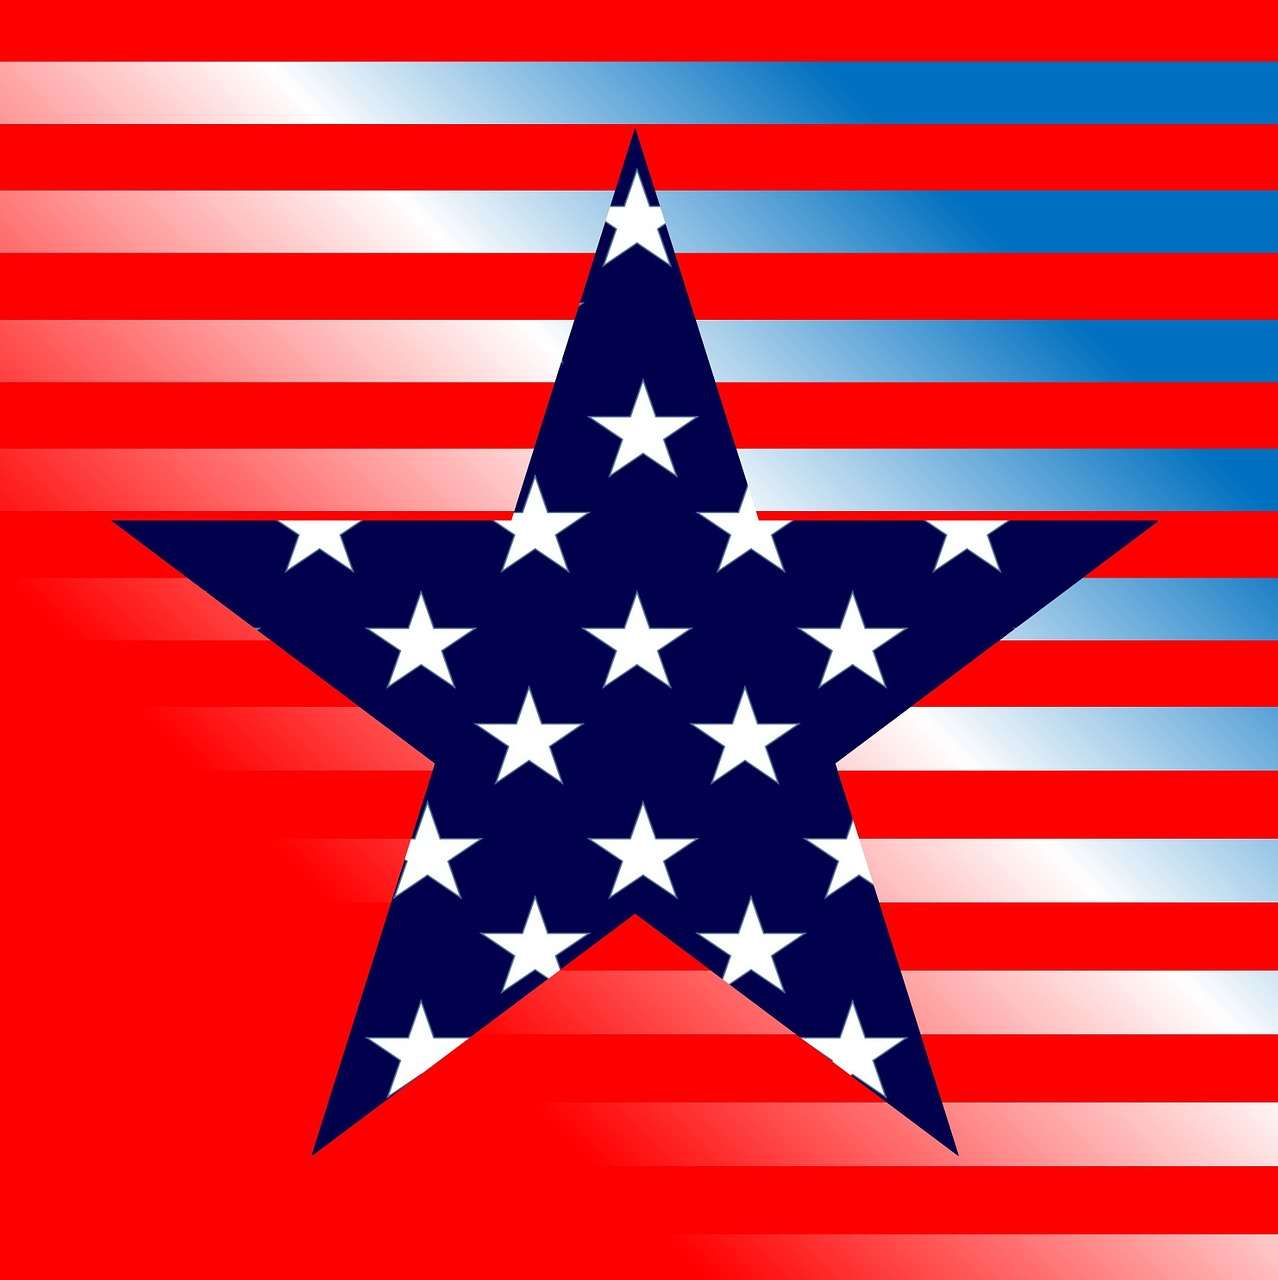 patriotic american usa free photo